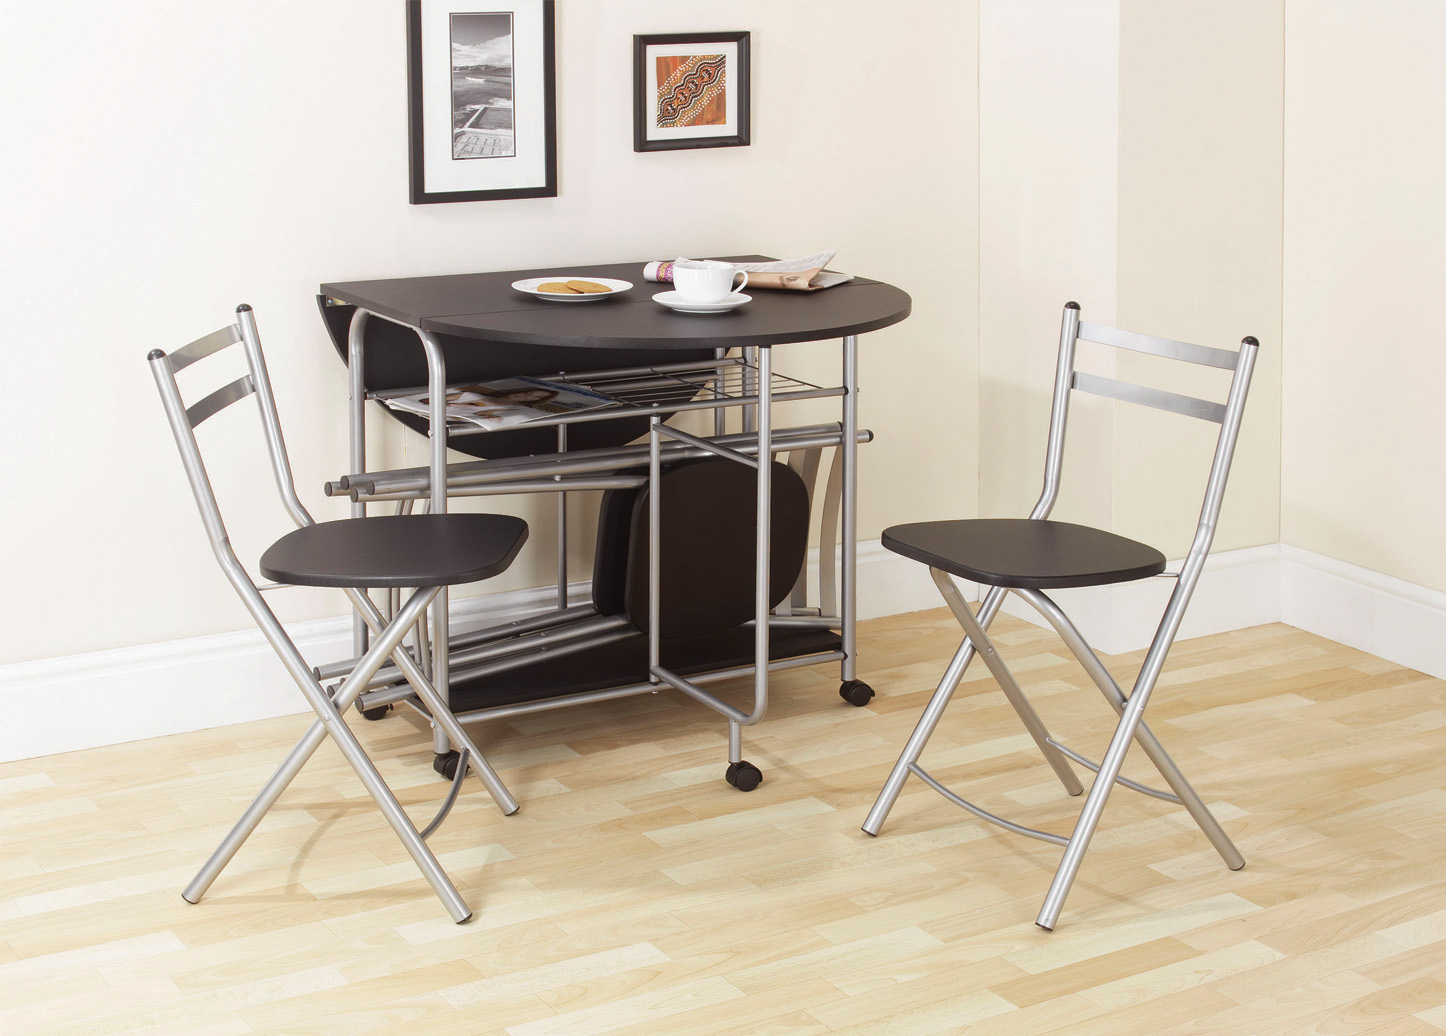 space saving dining table and chairs pride lift chair hand control good saver set homesfeed